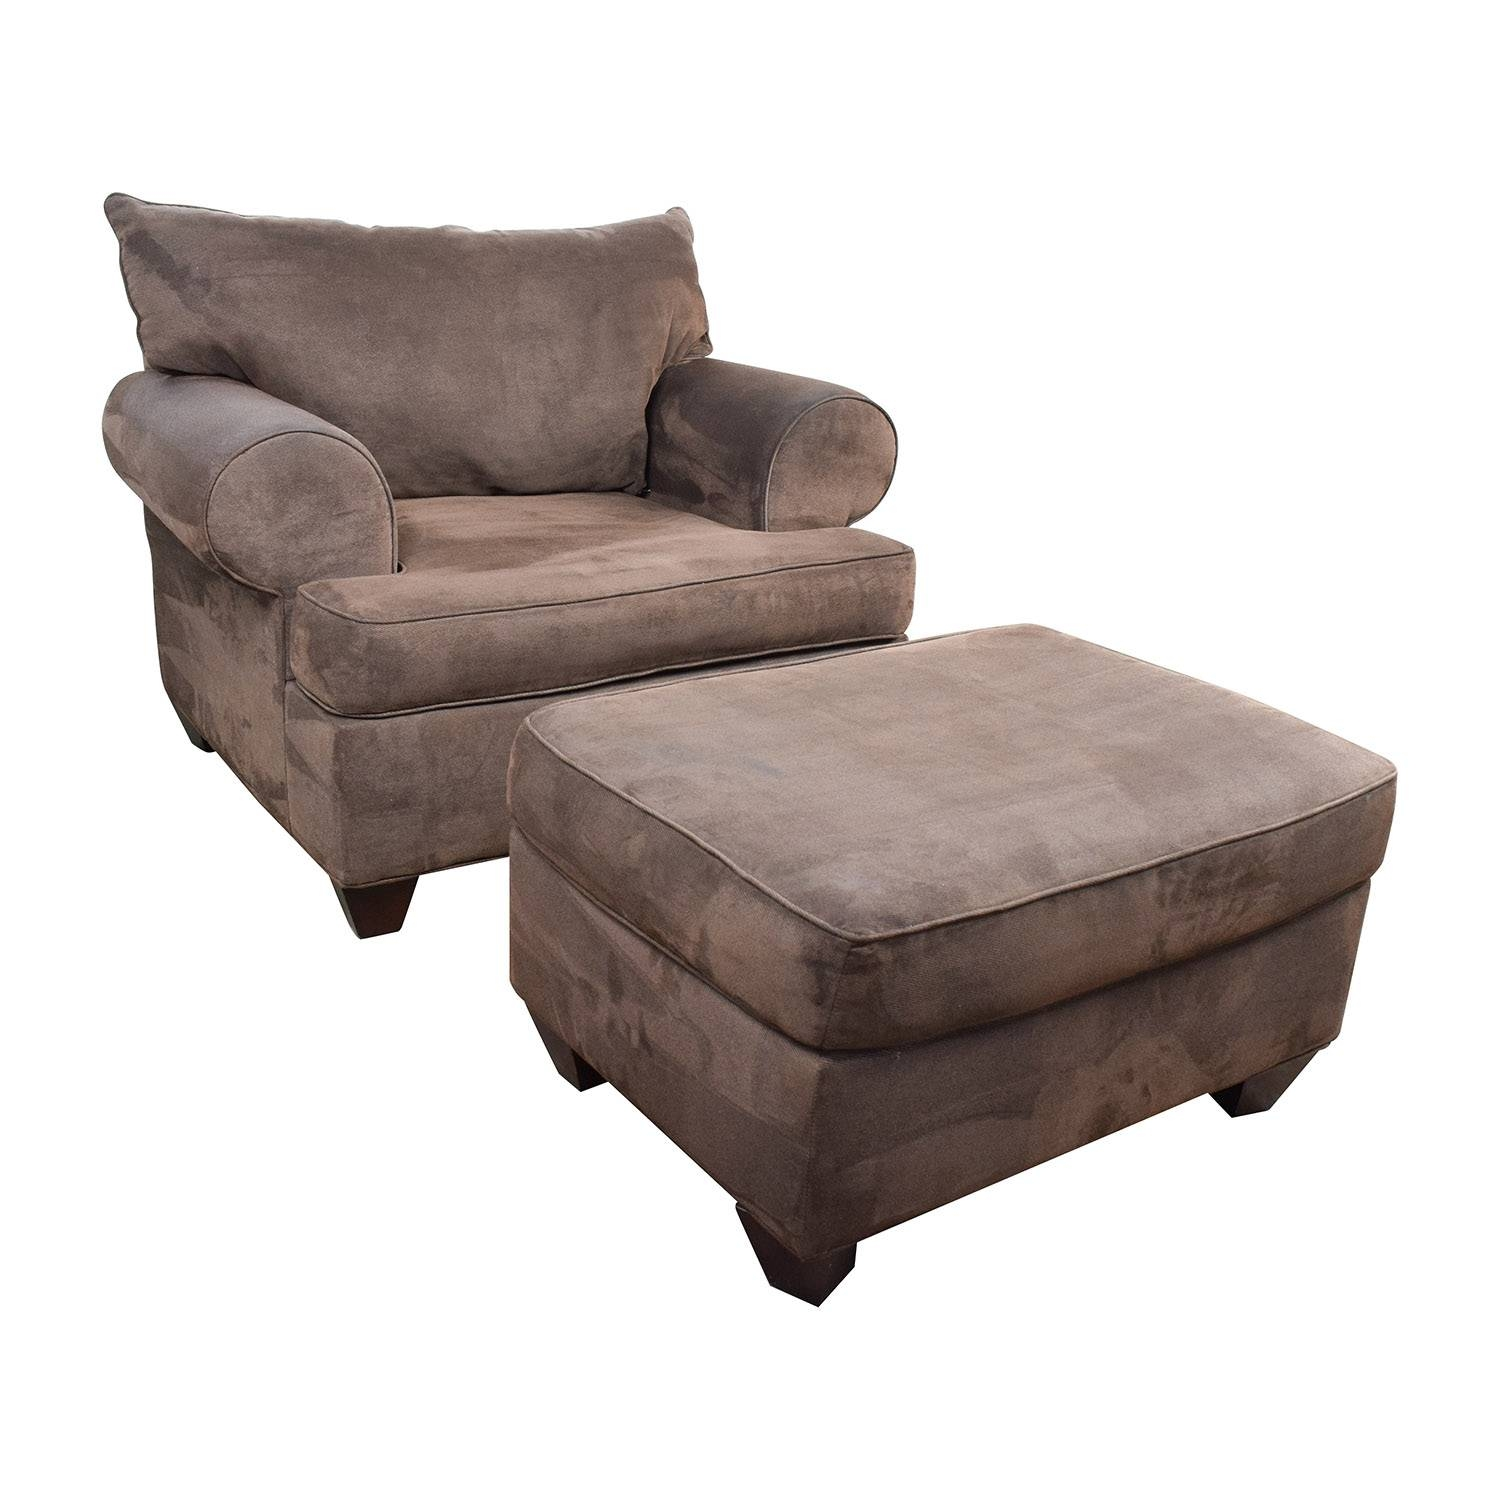 67% Off - Dark Brown Sofa Chair With Ottoman / Chairs with Brown Sofa Chairs (Image 3 of 15)